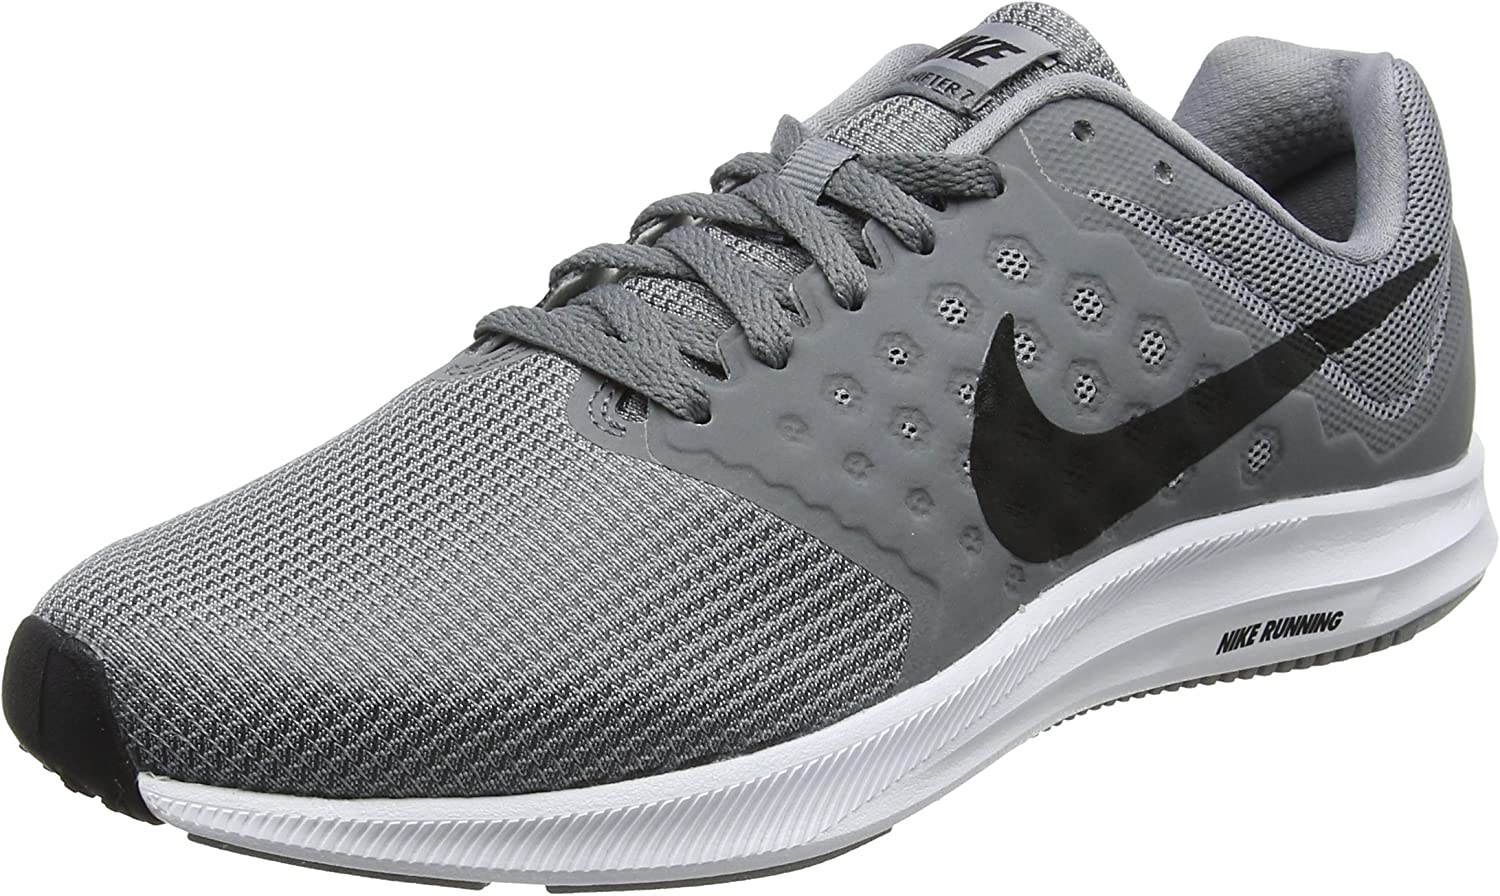 Nike Men s Downshifter 7 Running Shoe Stealth Black Cool Grey White Size 8 M US